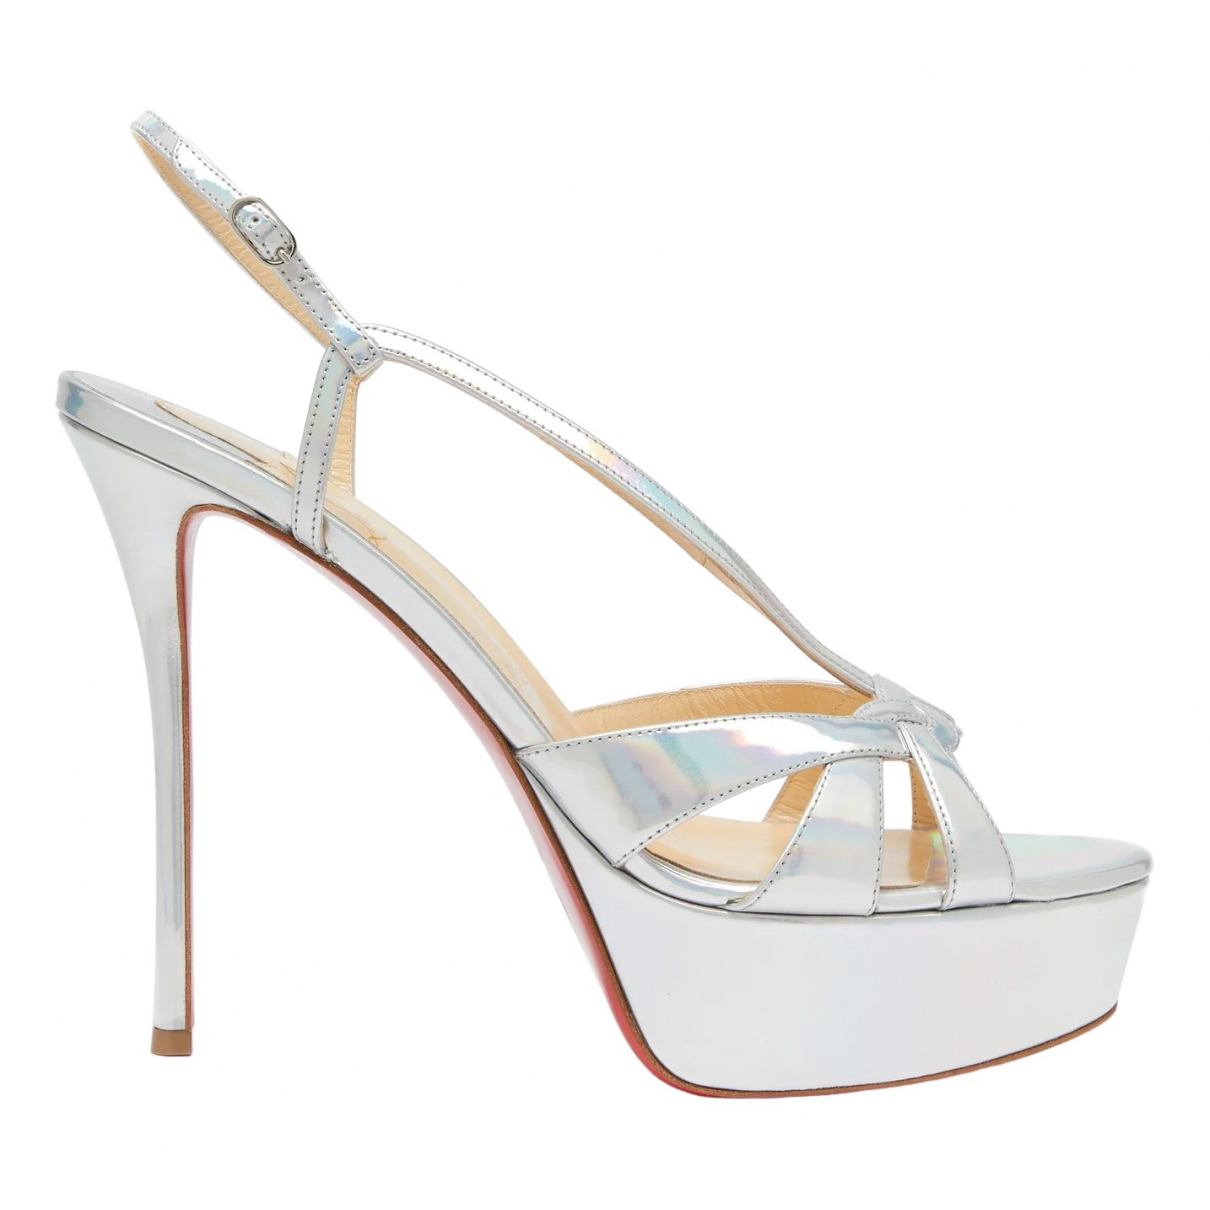 Christian Louboutin \N Silver Patent leather Sandals for Women 38 EU